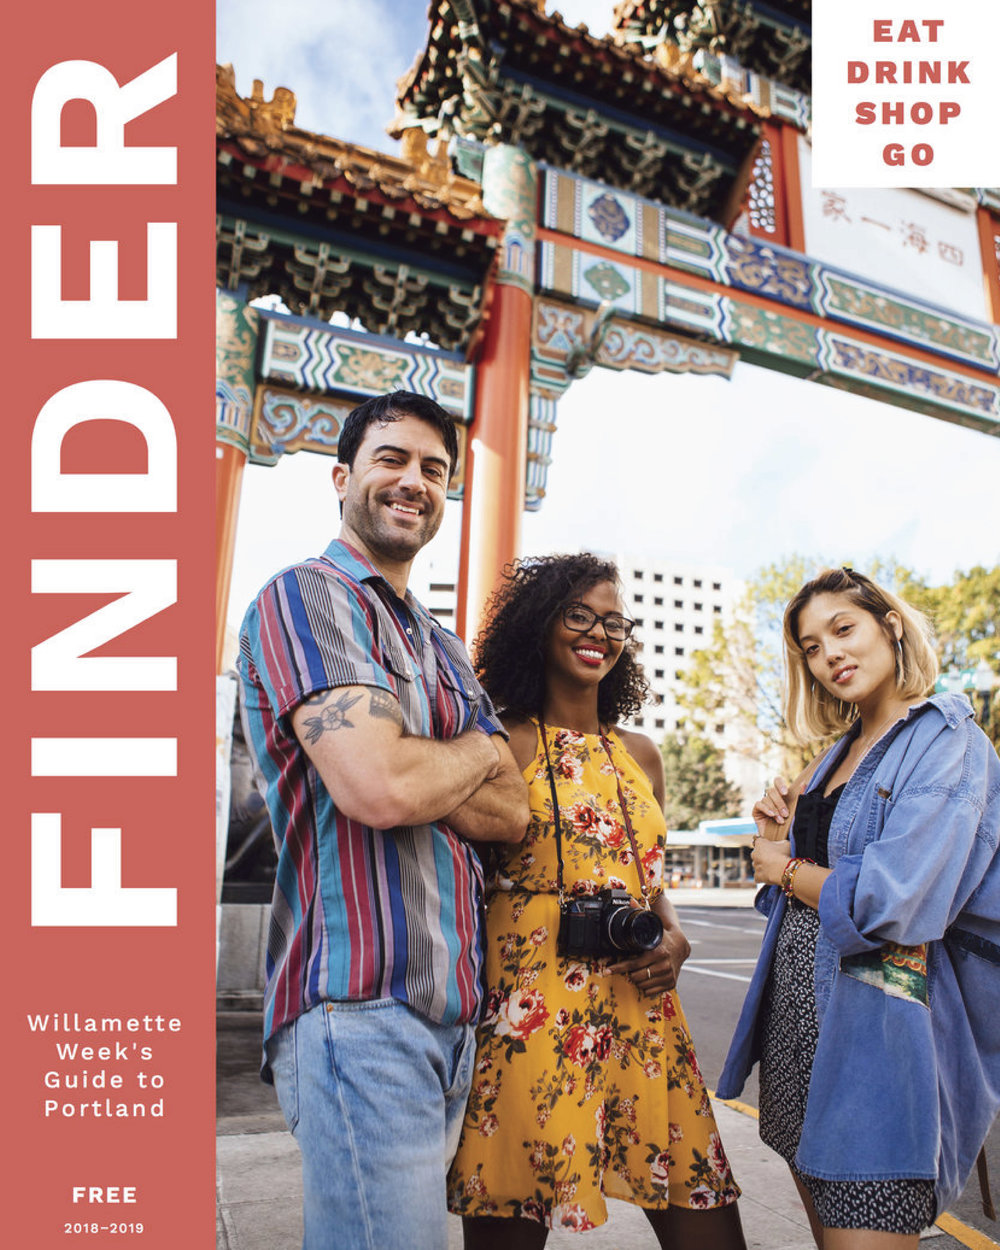 FINDER MAGAZINE - Annual guide to all things great in Portland, focused by neighborhood and targeted at locals and tourists alike.